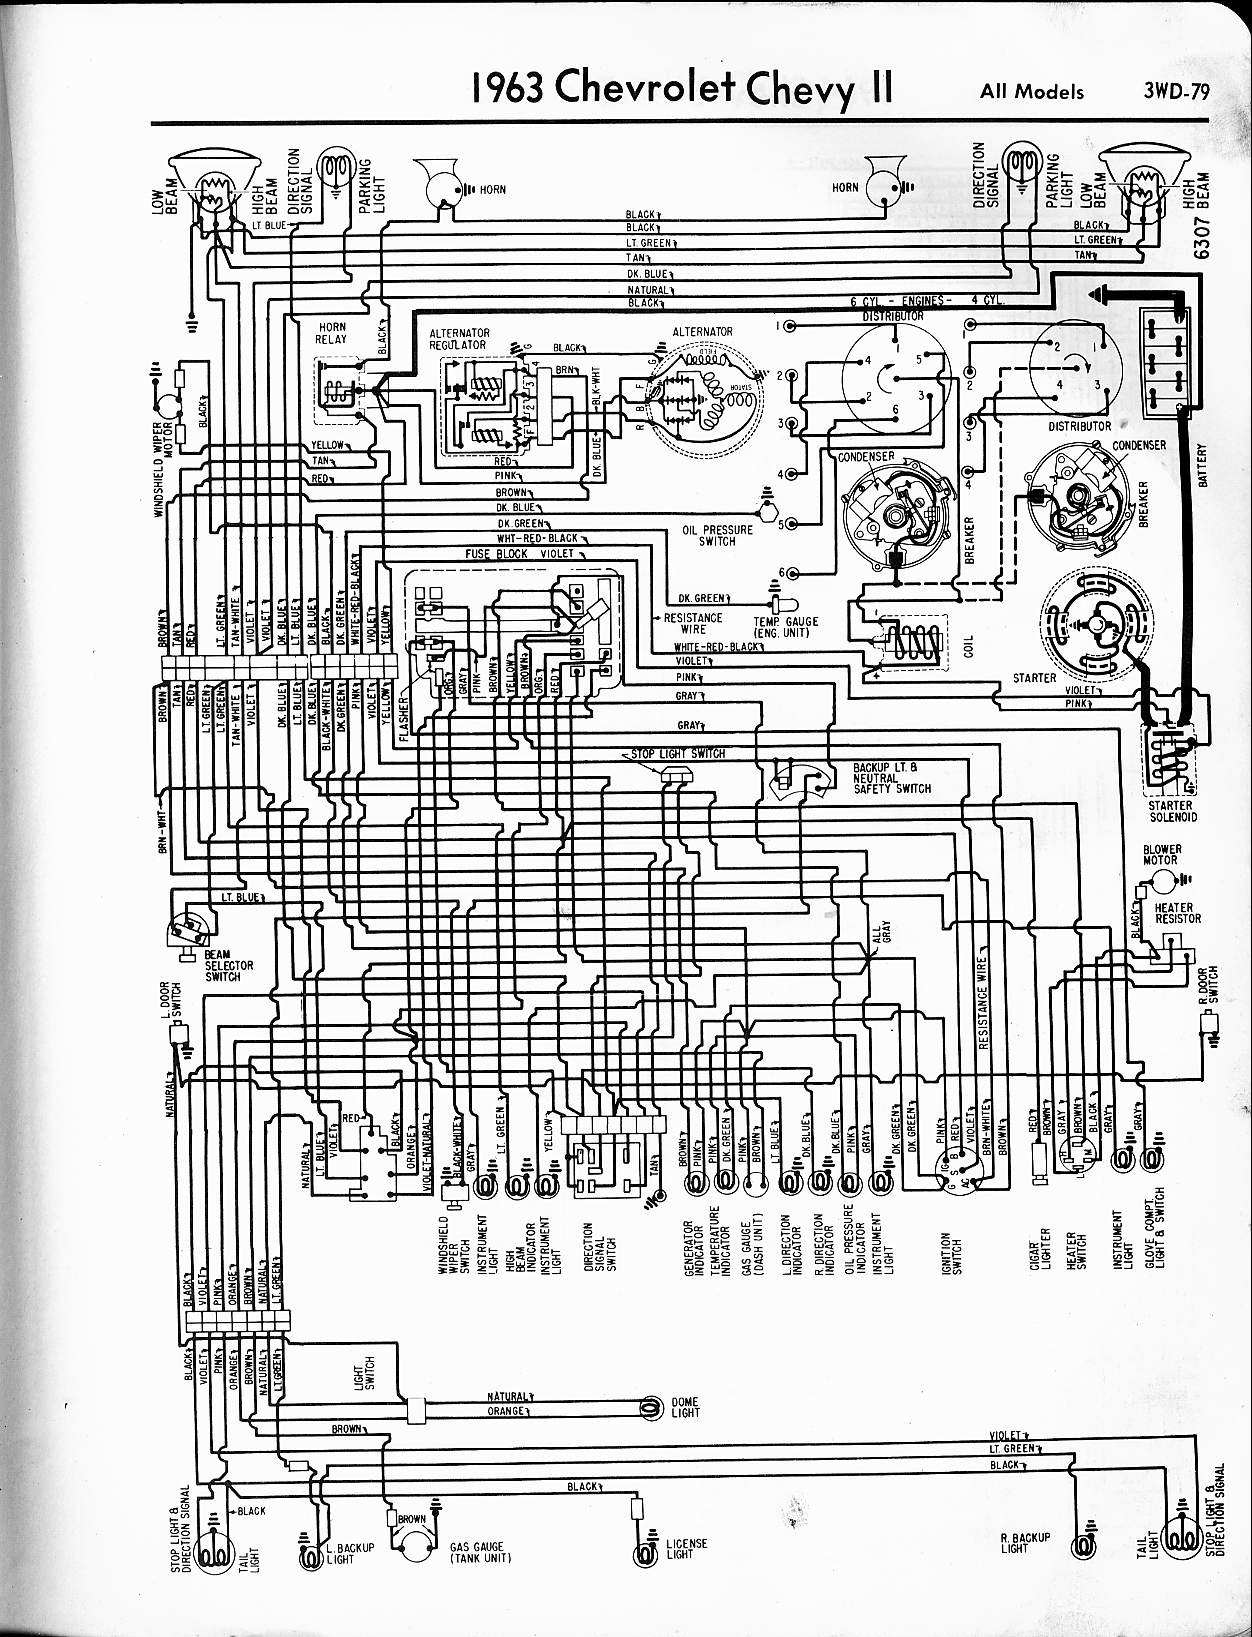 1964 nova wiring diagram heater electrical drawing wiring diagram 57 65 chevy wiring diagrams rh oldcarmanualproject com 1966 chevy nova wiring diagram 1967 chevy nova publicscrutiny